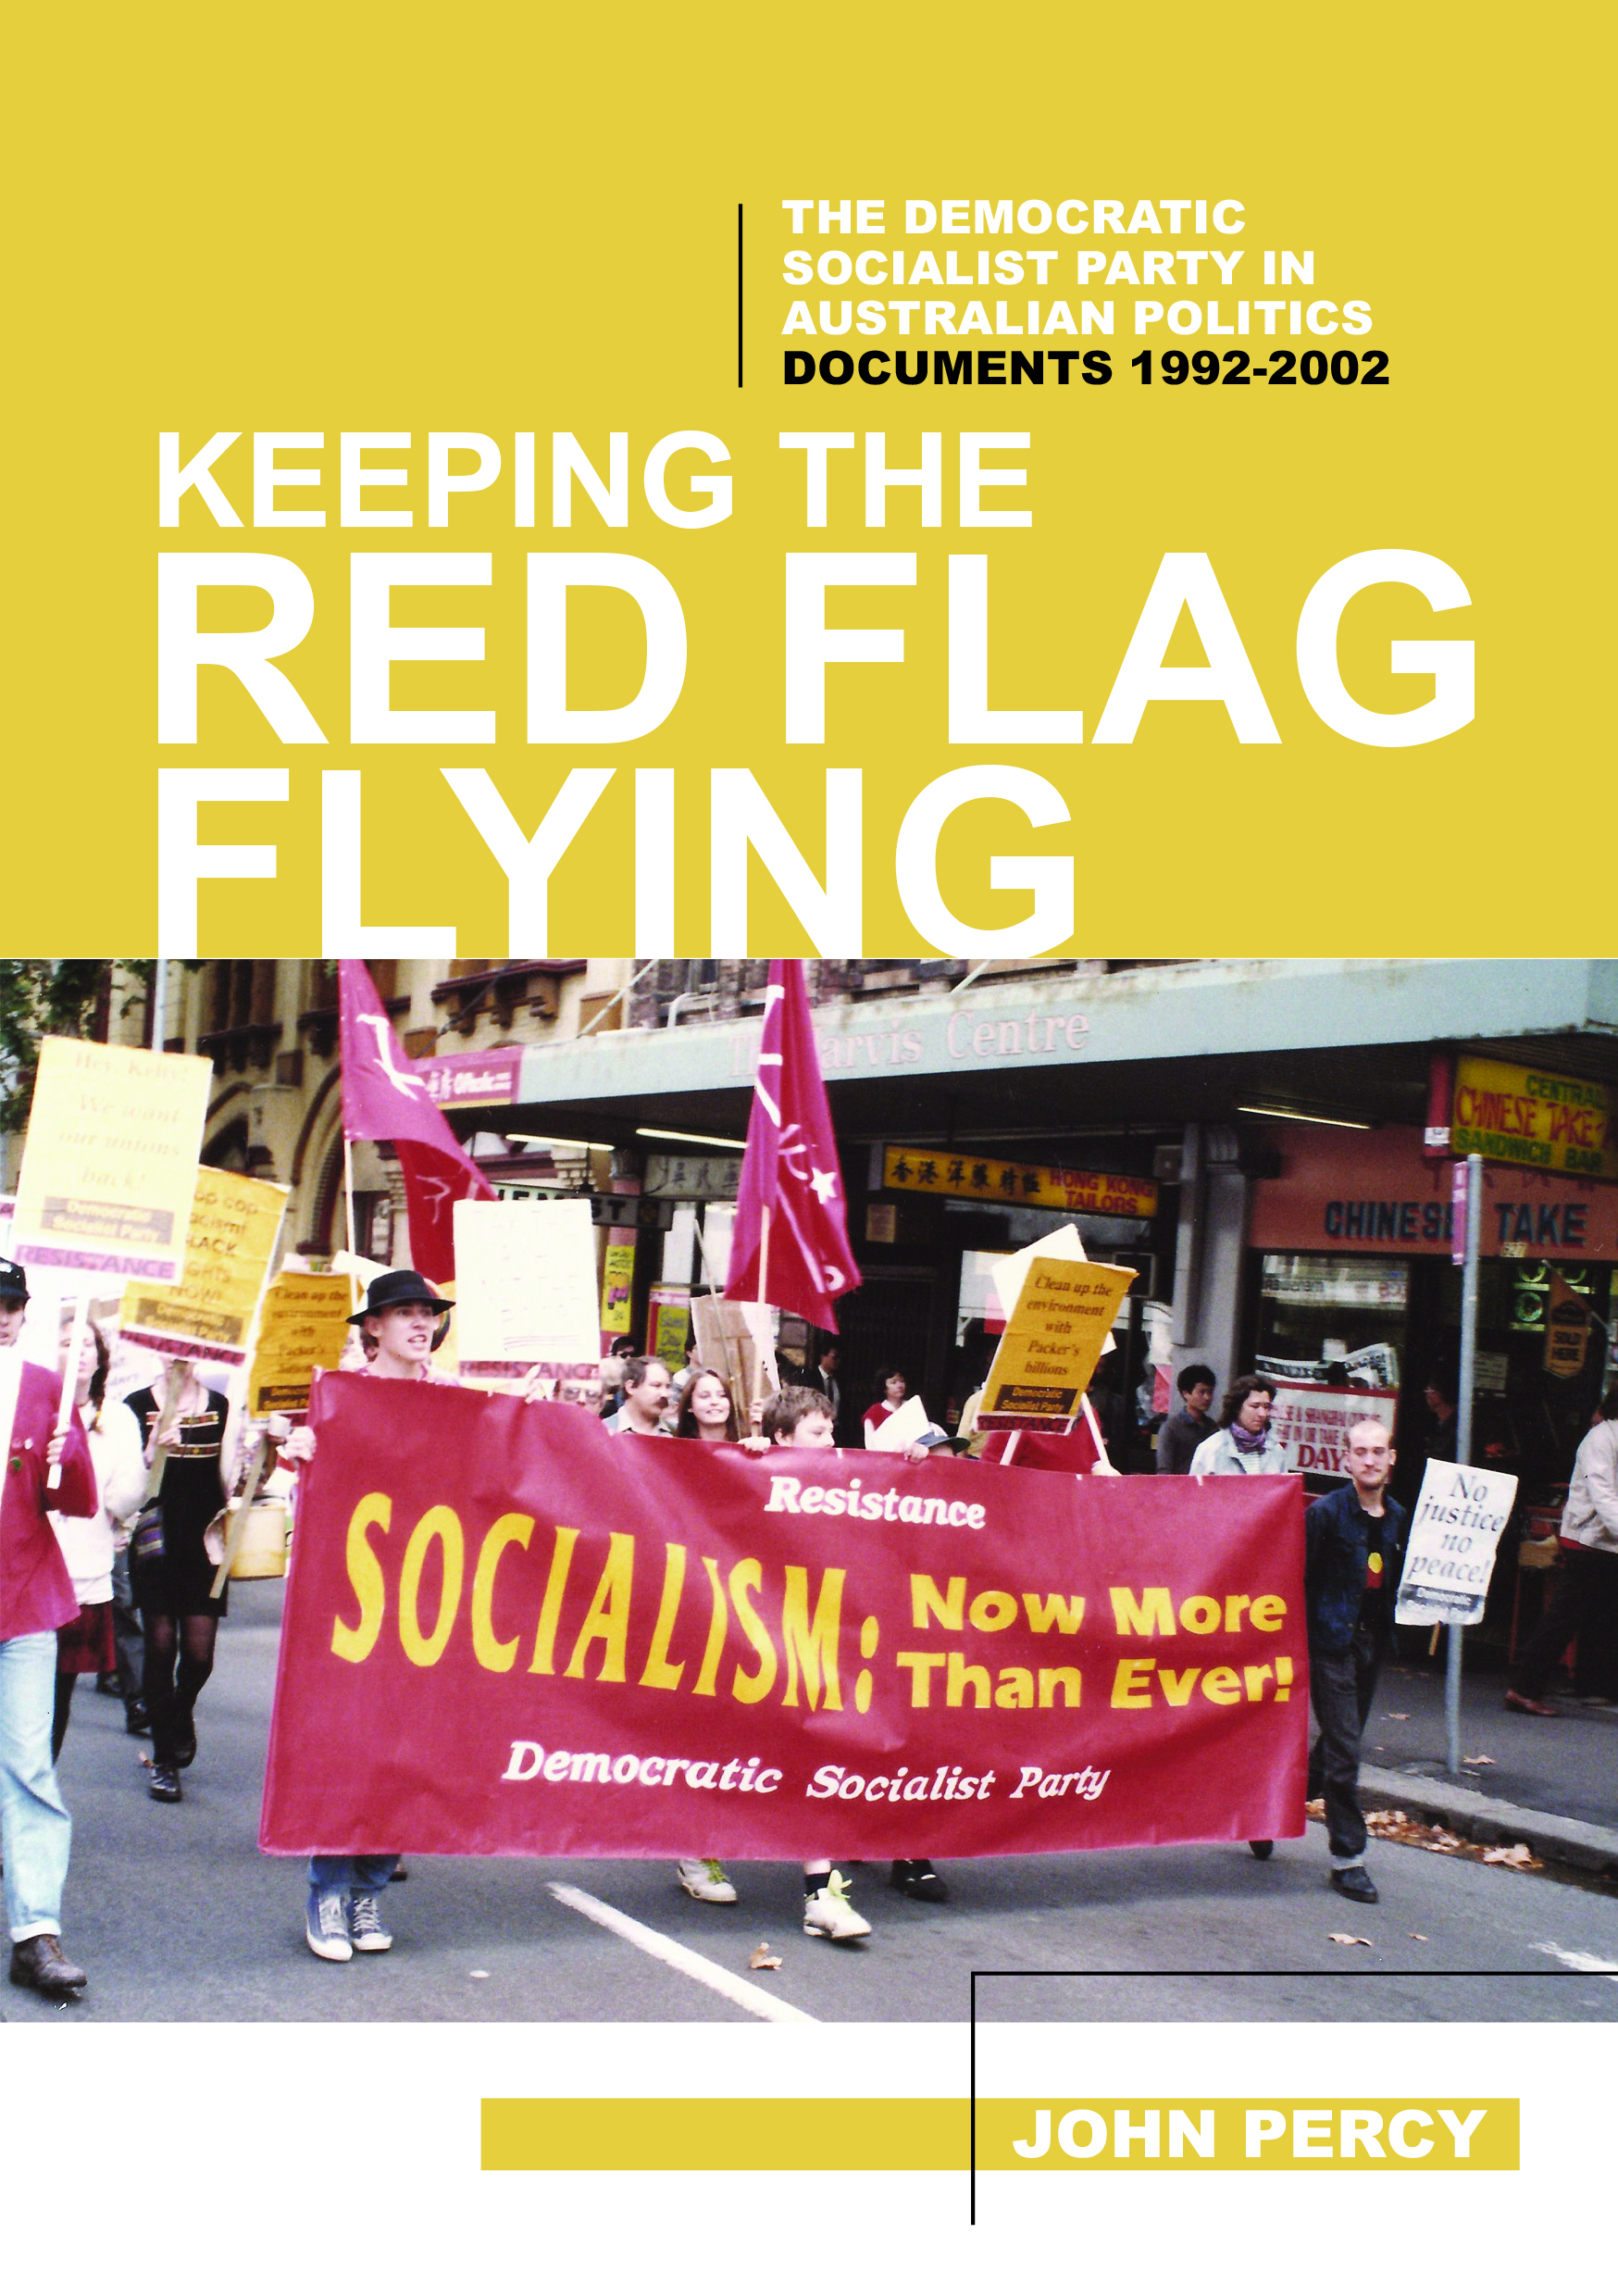 Keeping the red flag flying